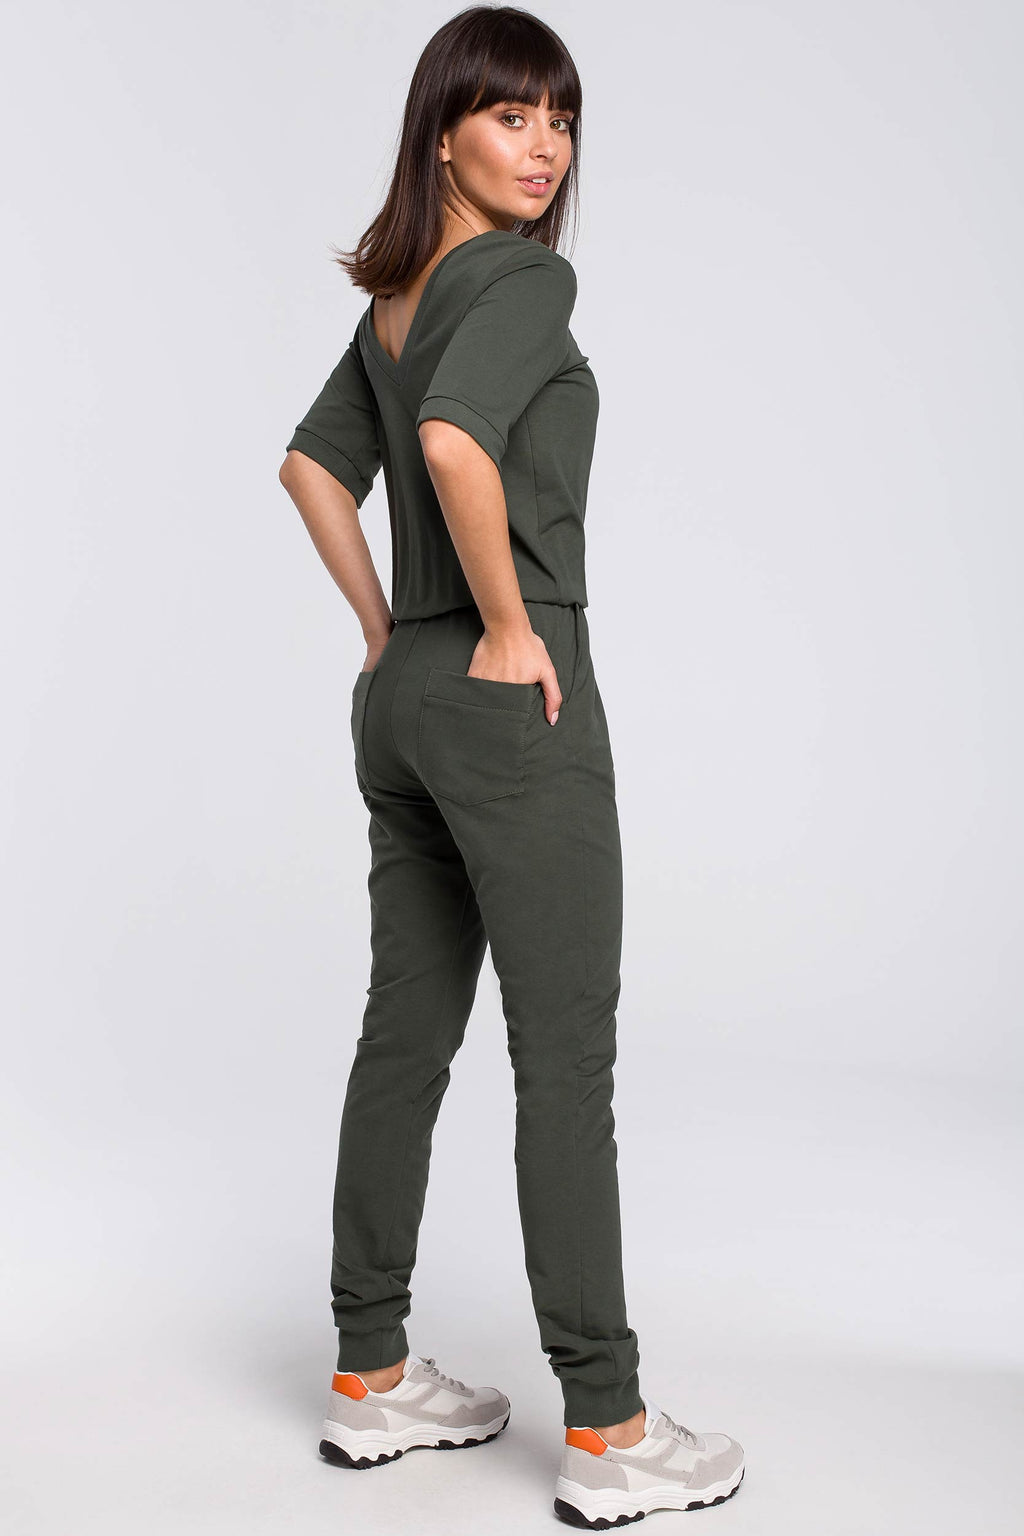 Khaki V Neck Back Cotton Jumpsuit With Elastic Waist - So Chic Boutique